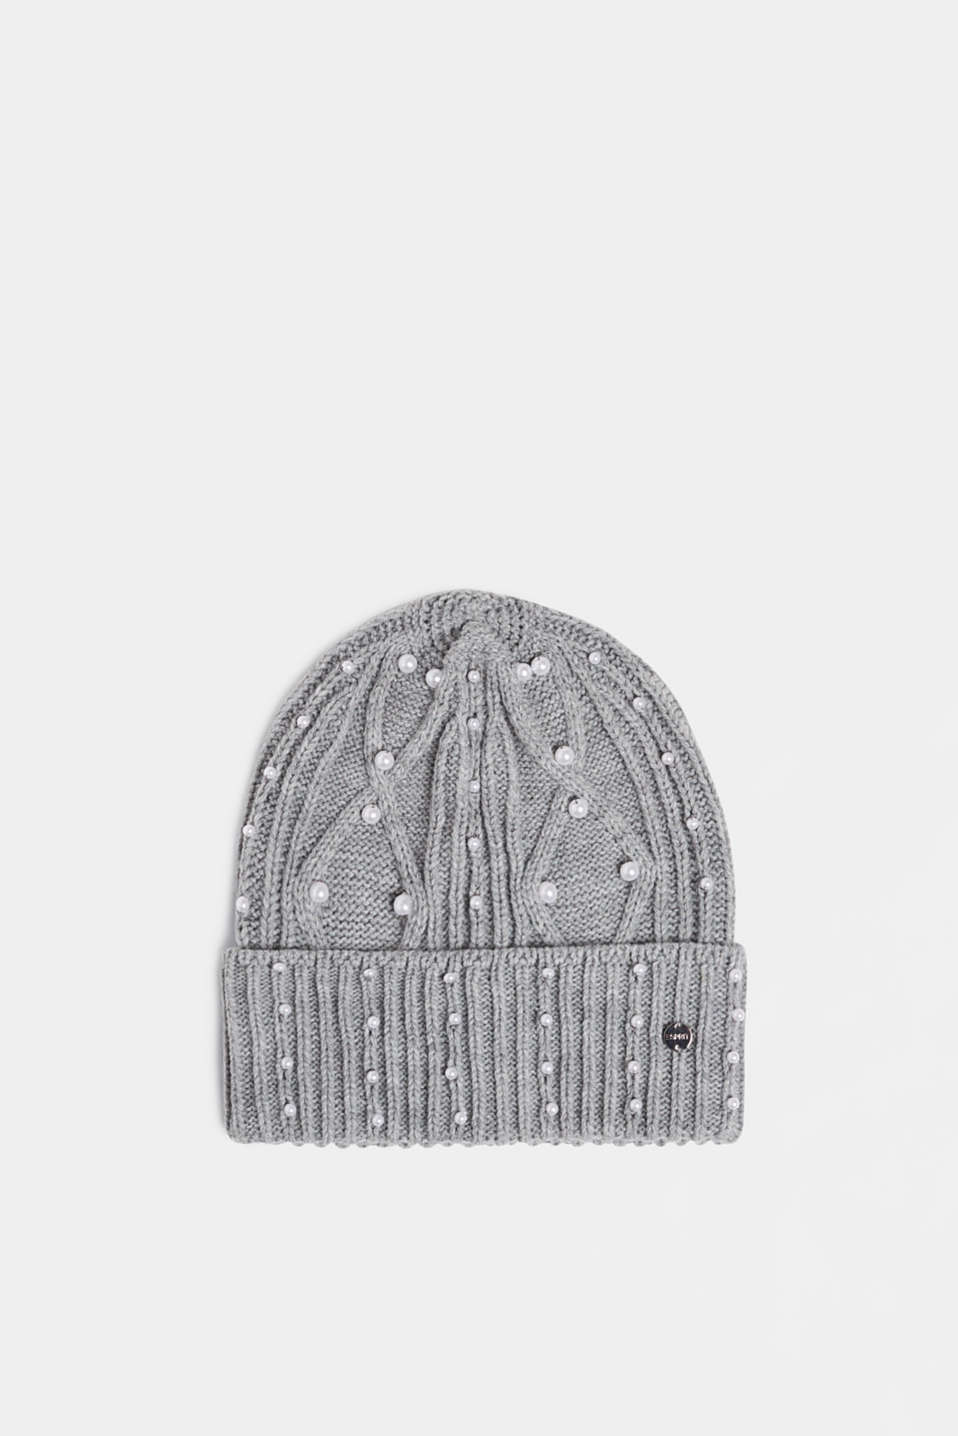 Esprit - Textured knit beanie trimmed with beads